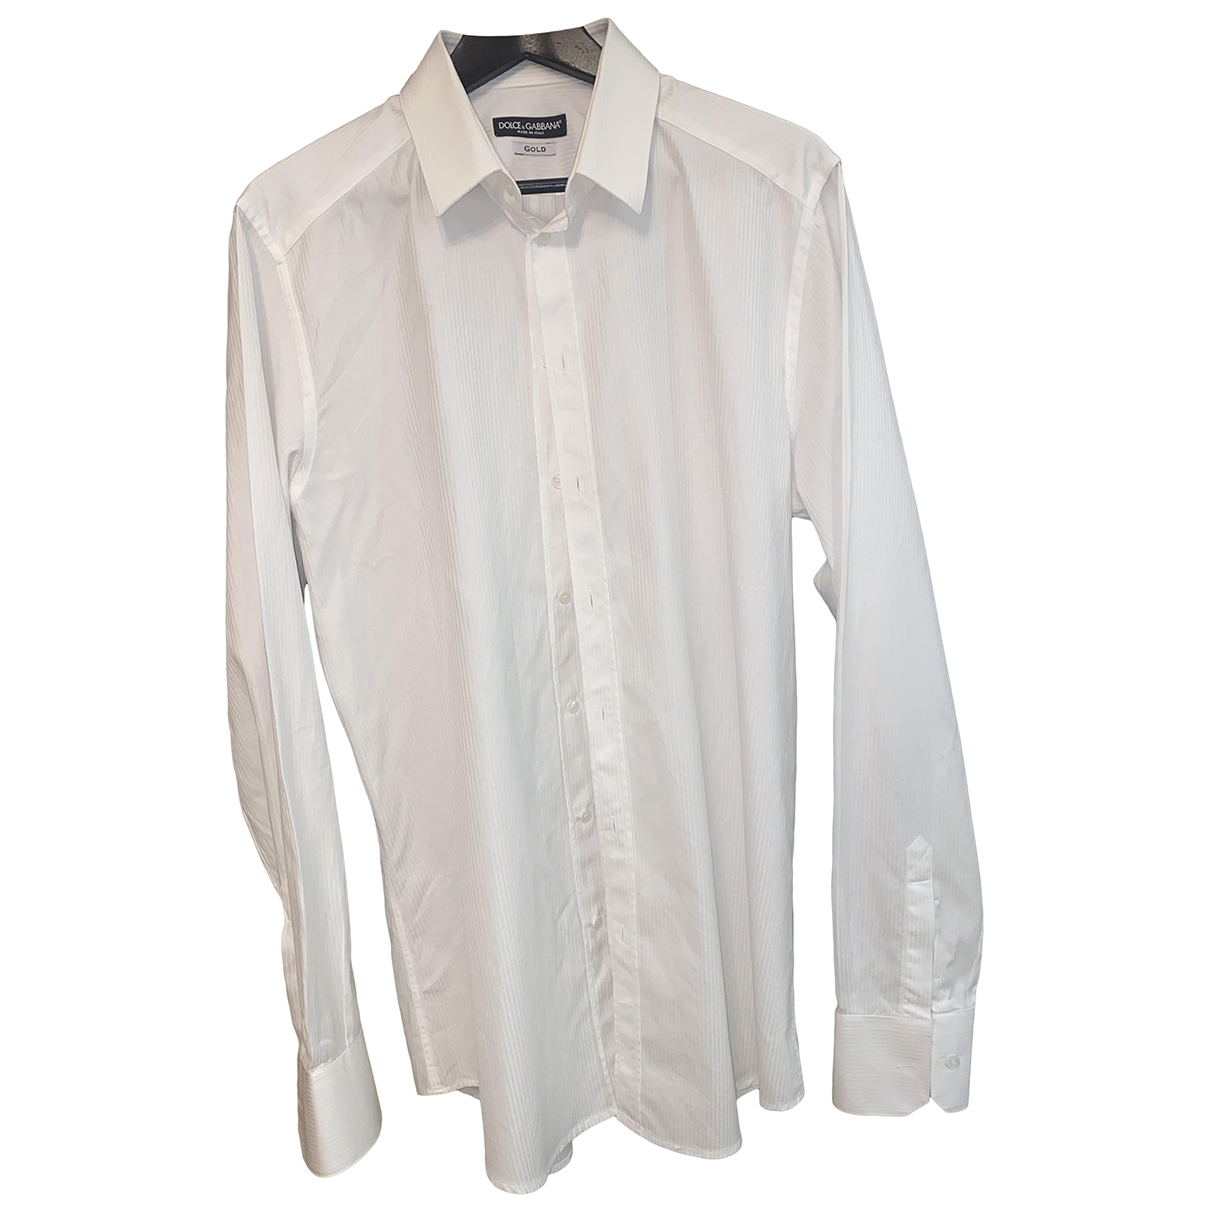 Dolce & Gabbana \N White Cotton Shirts for Men L International